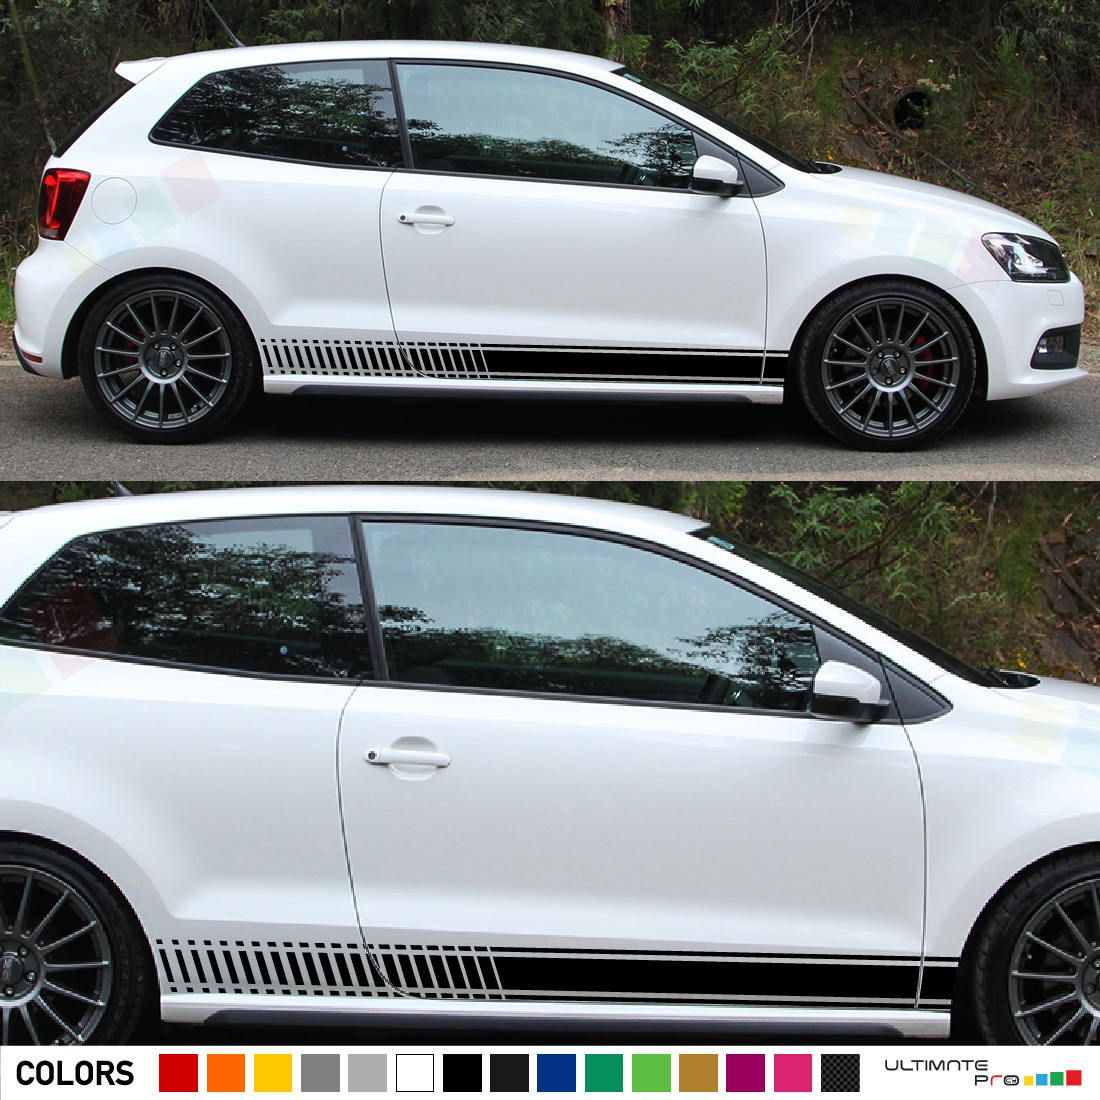 Set Of Racing Side Stripes Decal Sticker Graphic Compatible With Volkswagen Vw Polo Gti Mk4 3 5 Door Hatchback Volkswagen Polo Volkswagen Vw Polo [ 1100 x 1100 Pixel ]